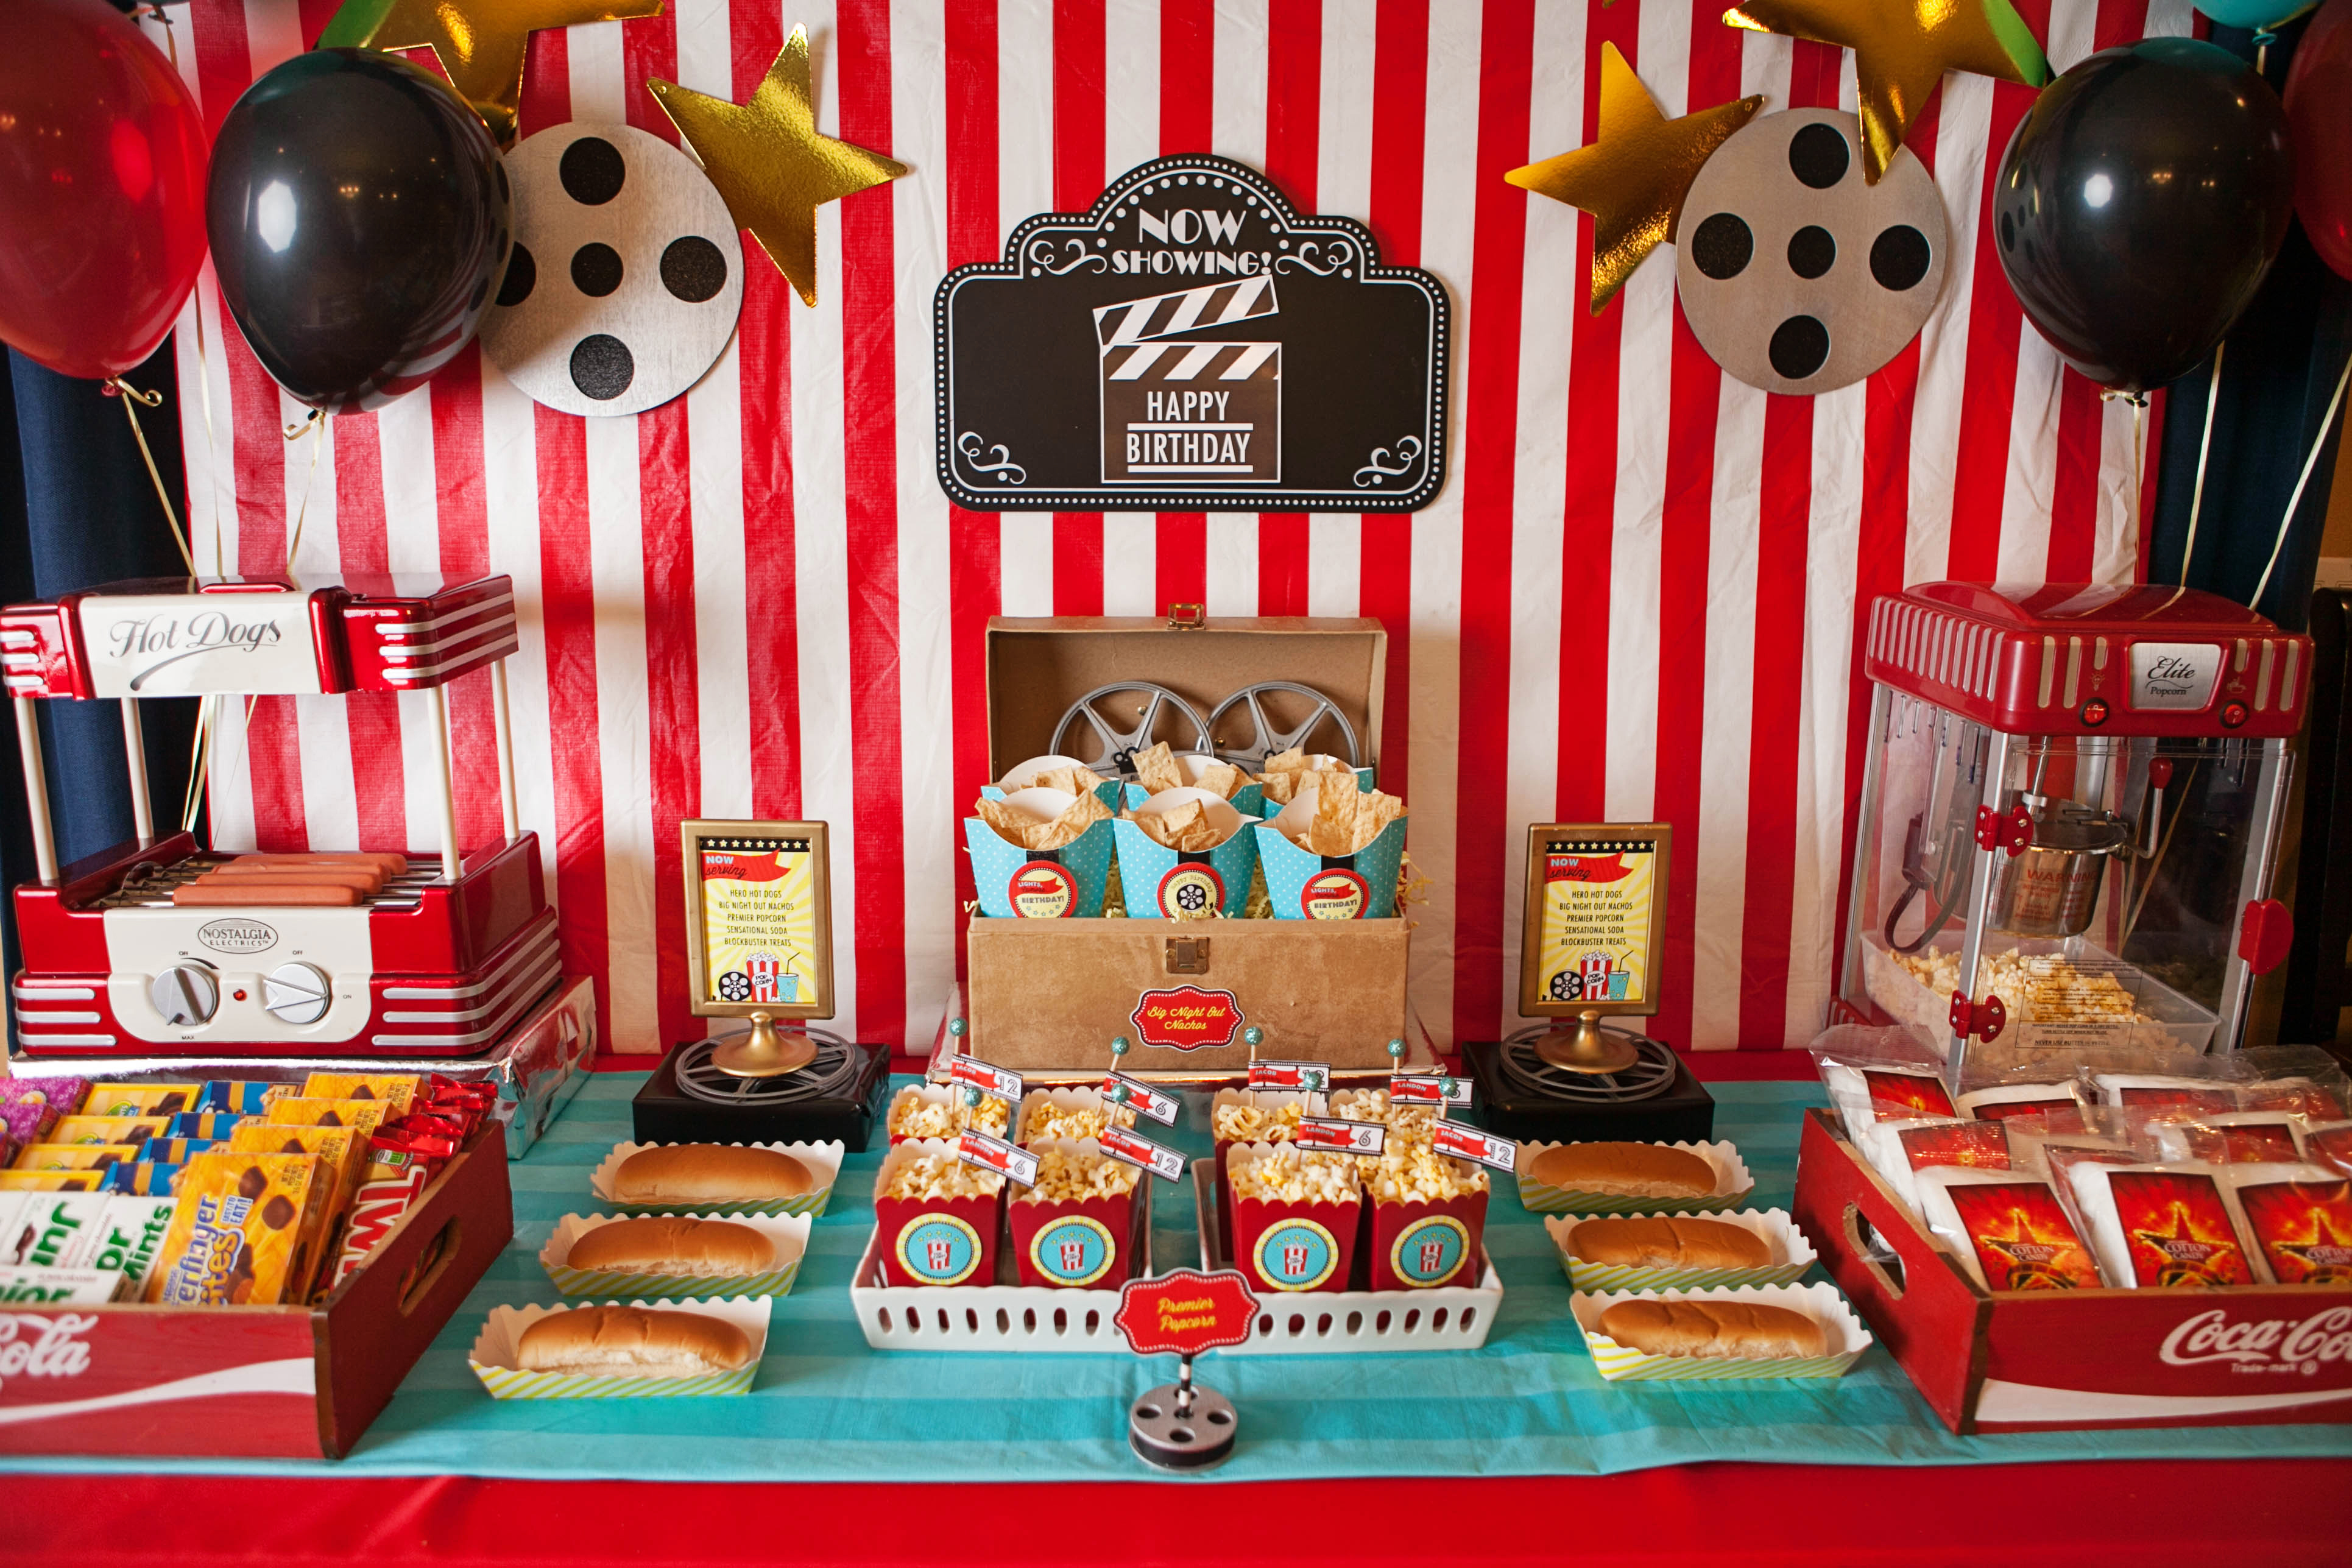 897 furthermore  further Fabulous 50 Black Gold Birthday Party besides Themed Decor Las Vegas  plete Theme C 584 590 together with Hot chocolate party favor. on table decorations ideas in hollywood theme